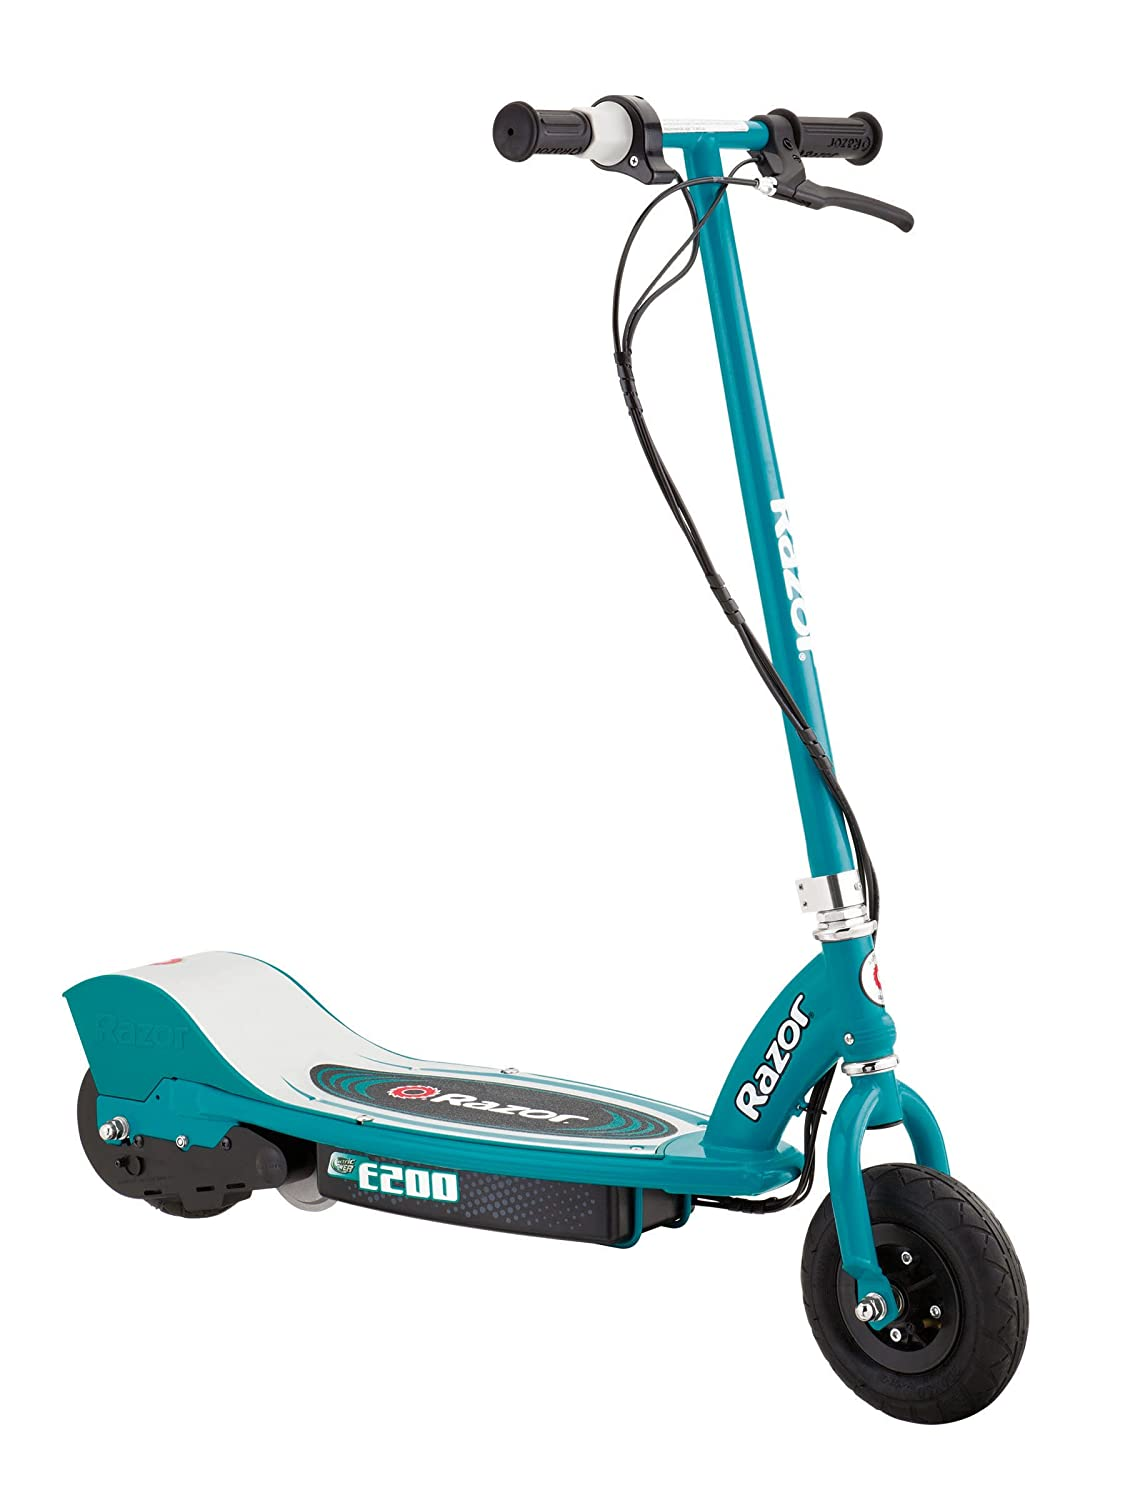 Bullet Scooter Electric Electric Sports Scooters